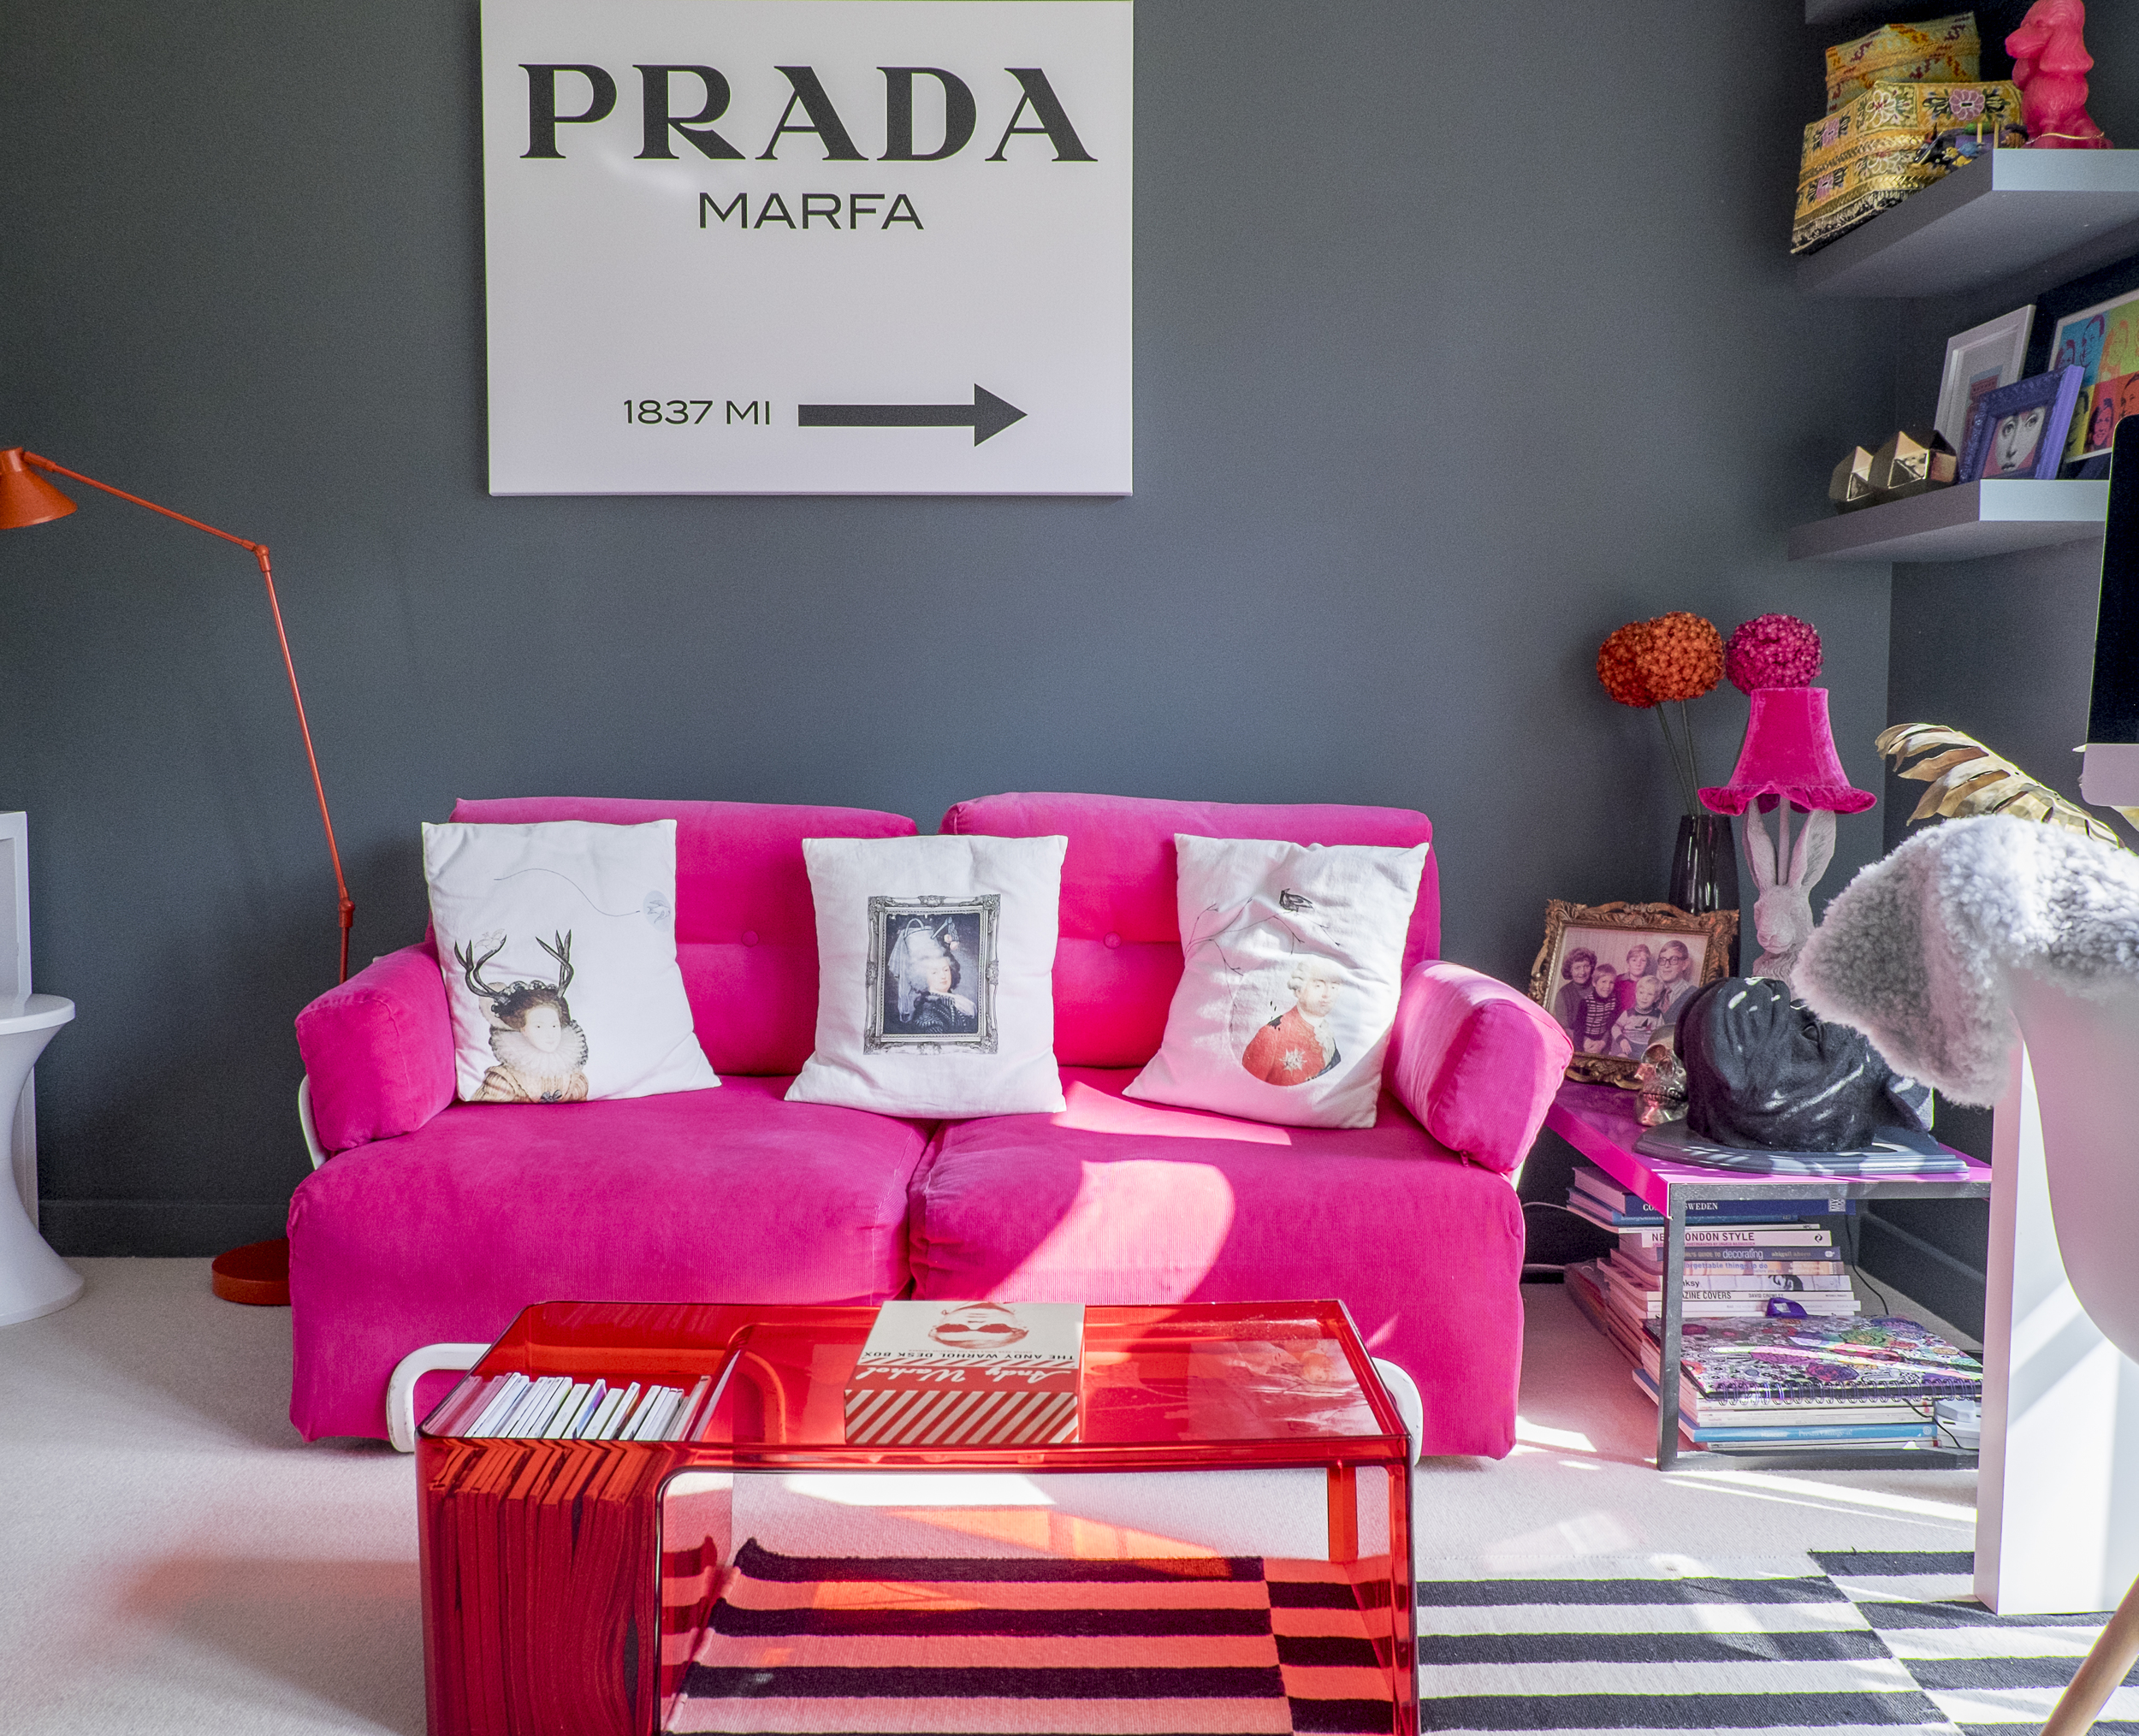 STELLA + THE STARS' OWN PRADA MARFA ART PRINT TAKING CENTRE STAGE IN MY HOME OFFICE